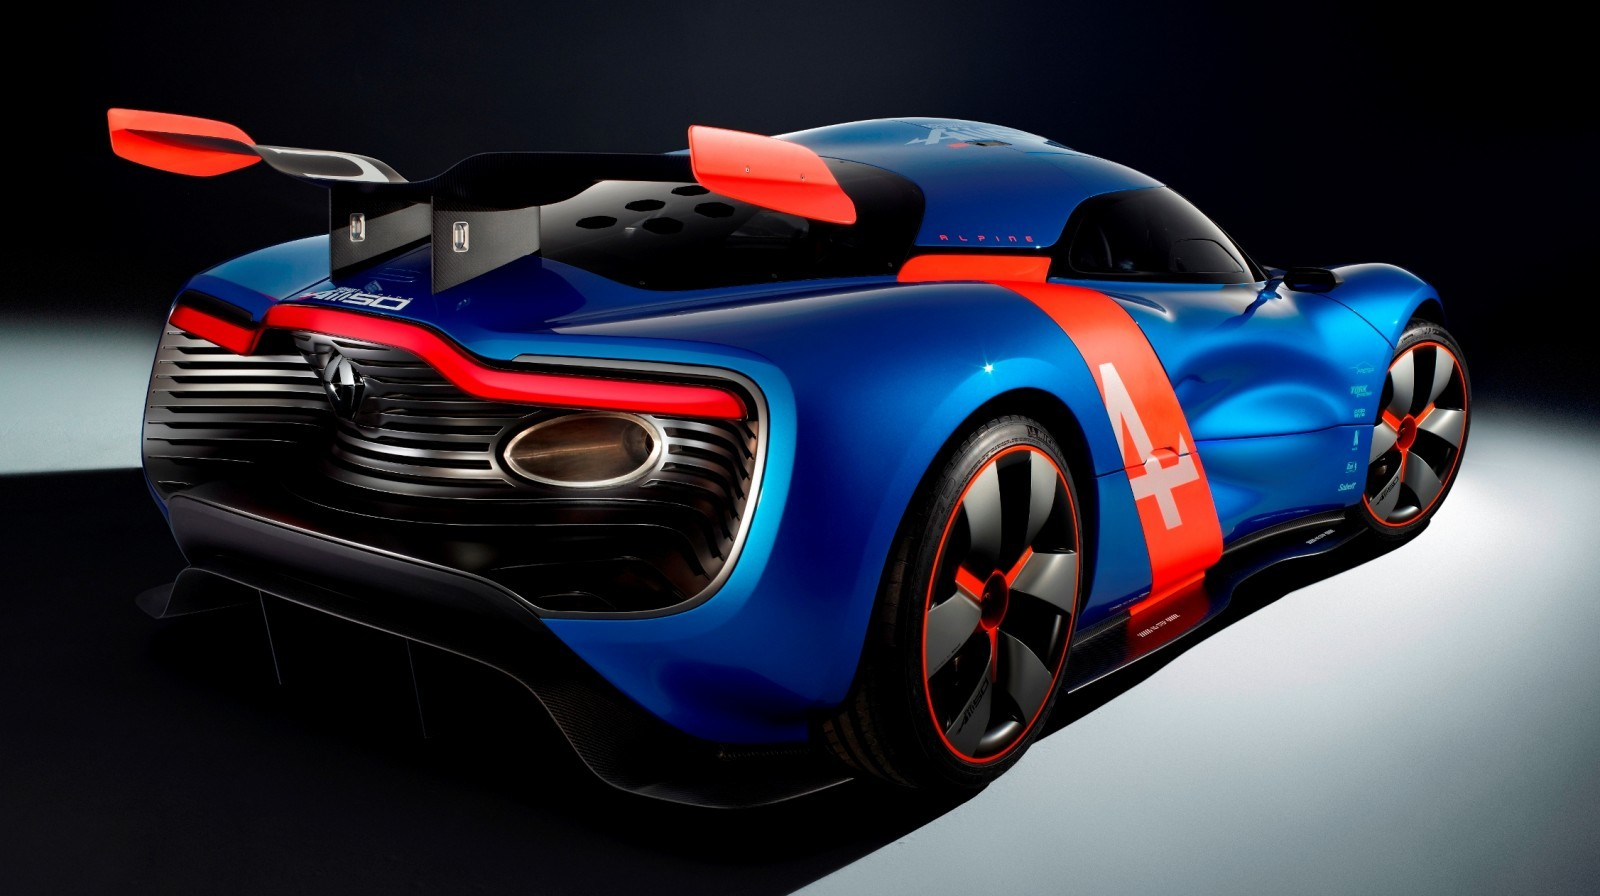 Concept Flashback - 2012 Renault Alpine A110-50 A Blend of M64 and A110 Berlinette 24